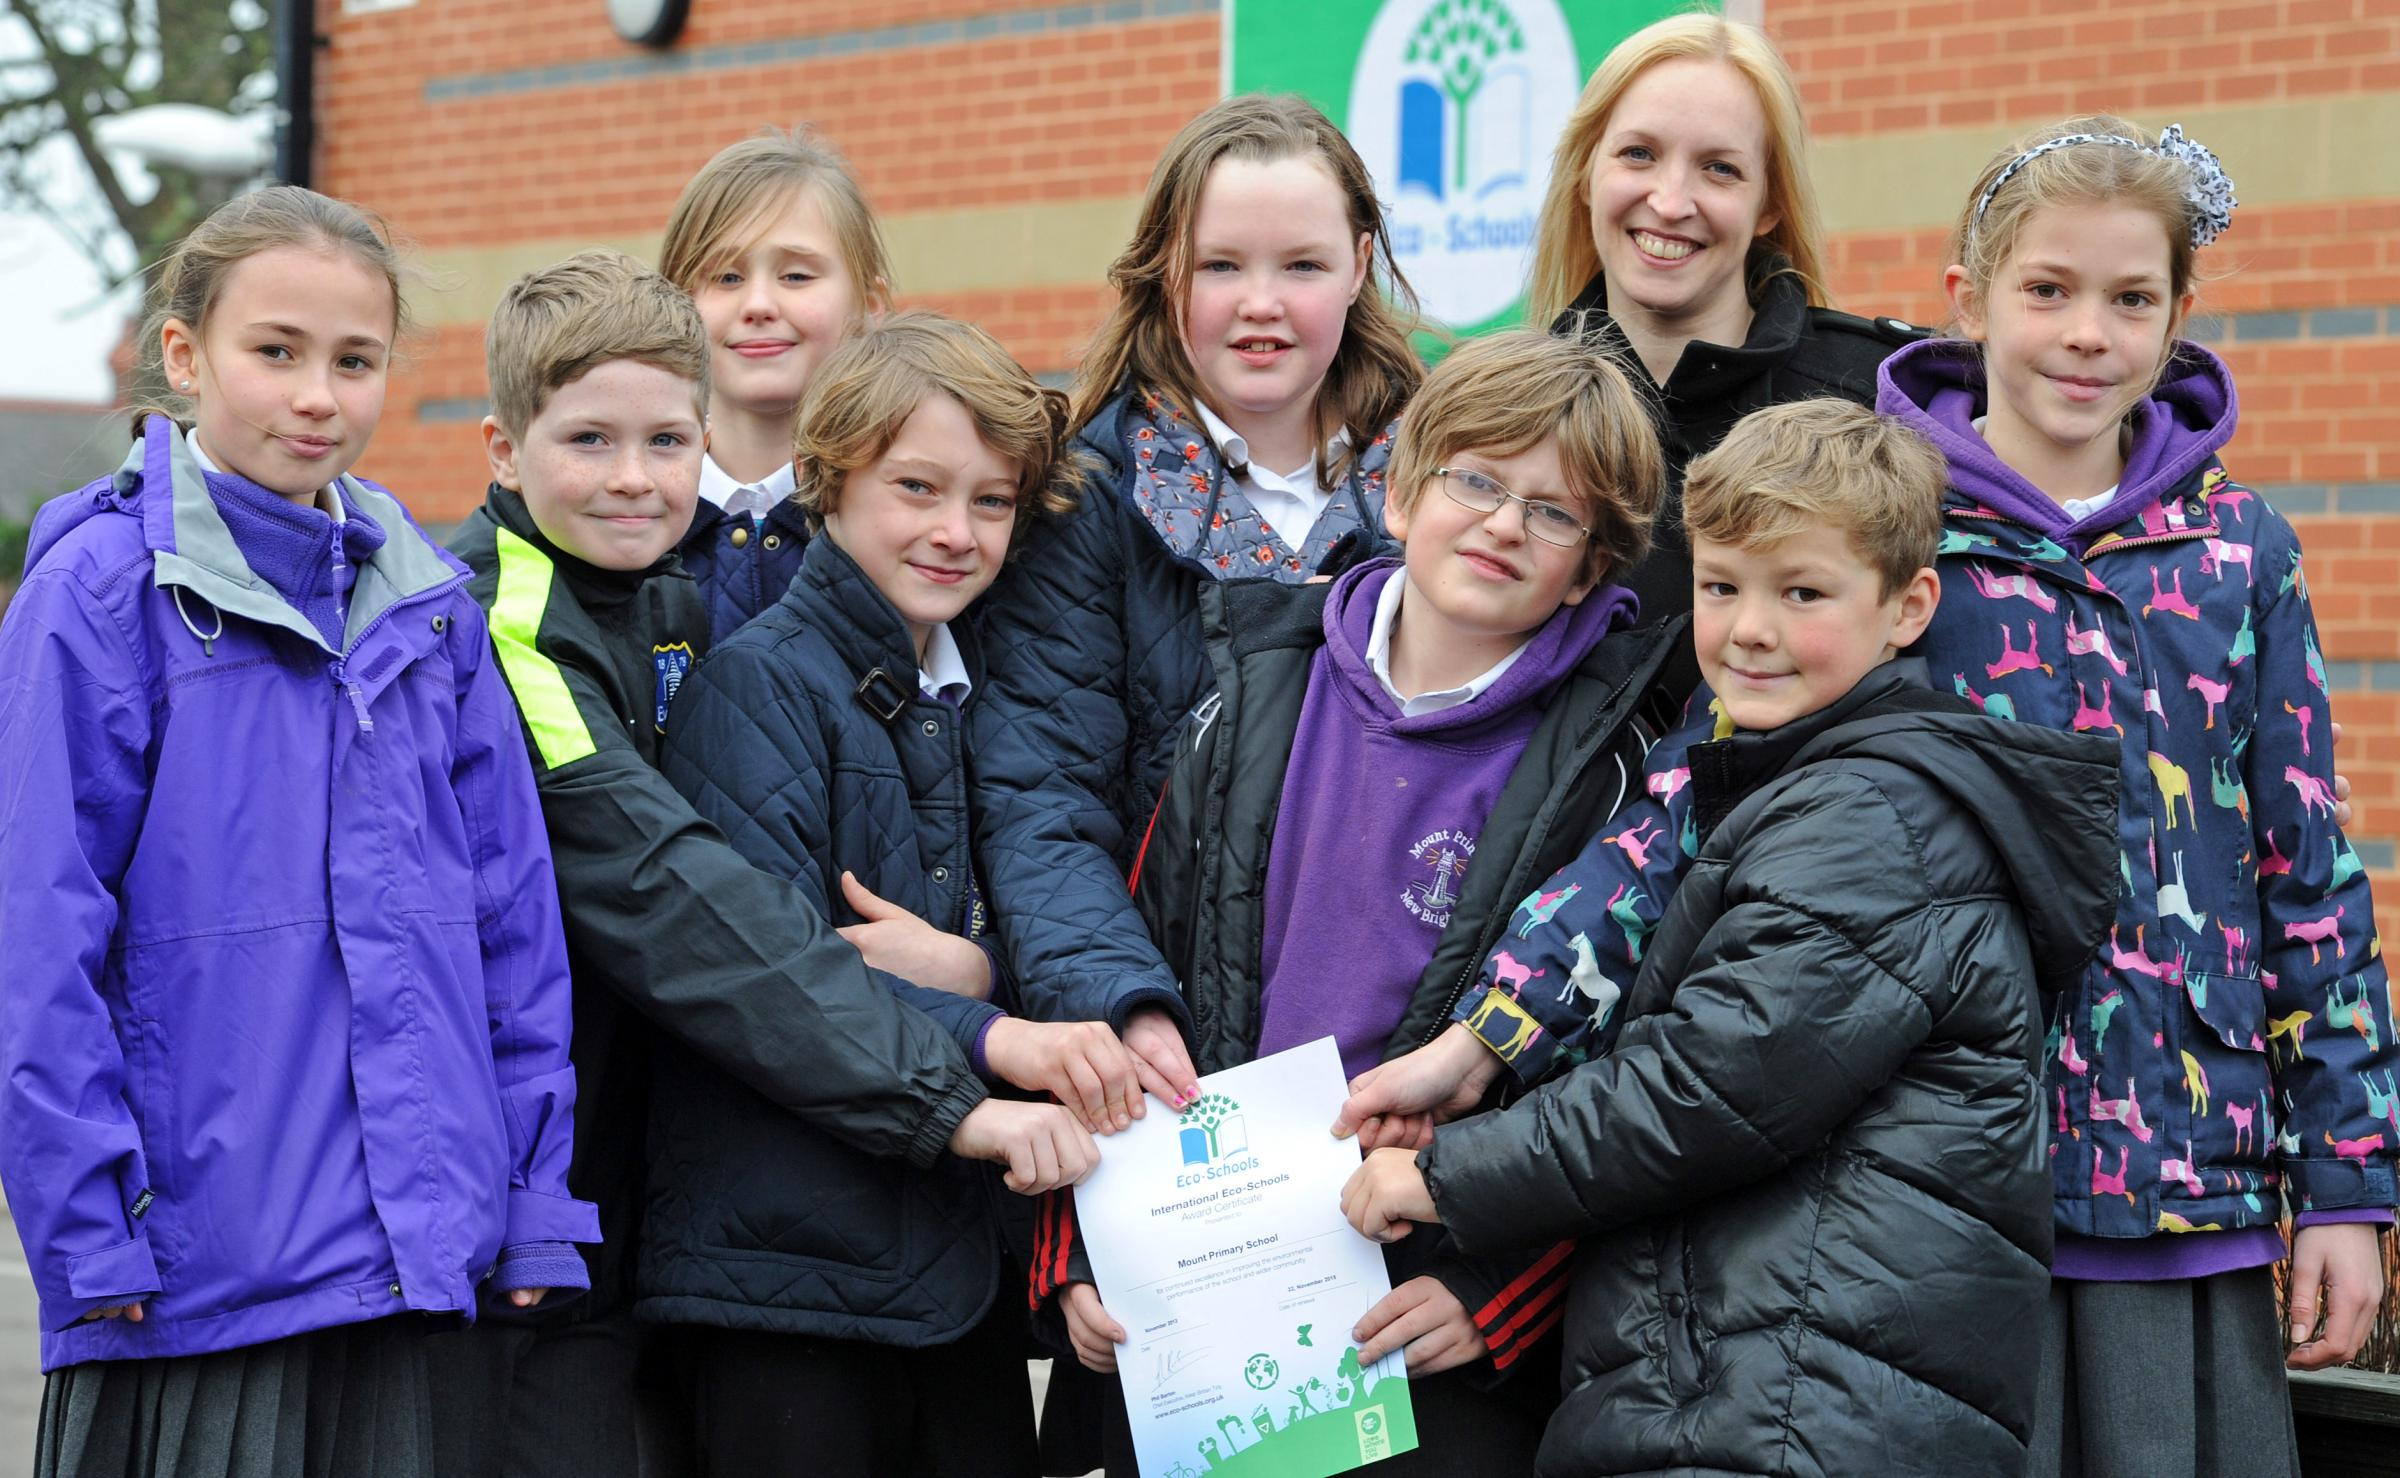 Mount Primary School in Wallasey celebrate their new Eco School status. Pictured are members of